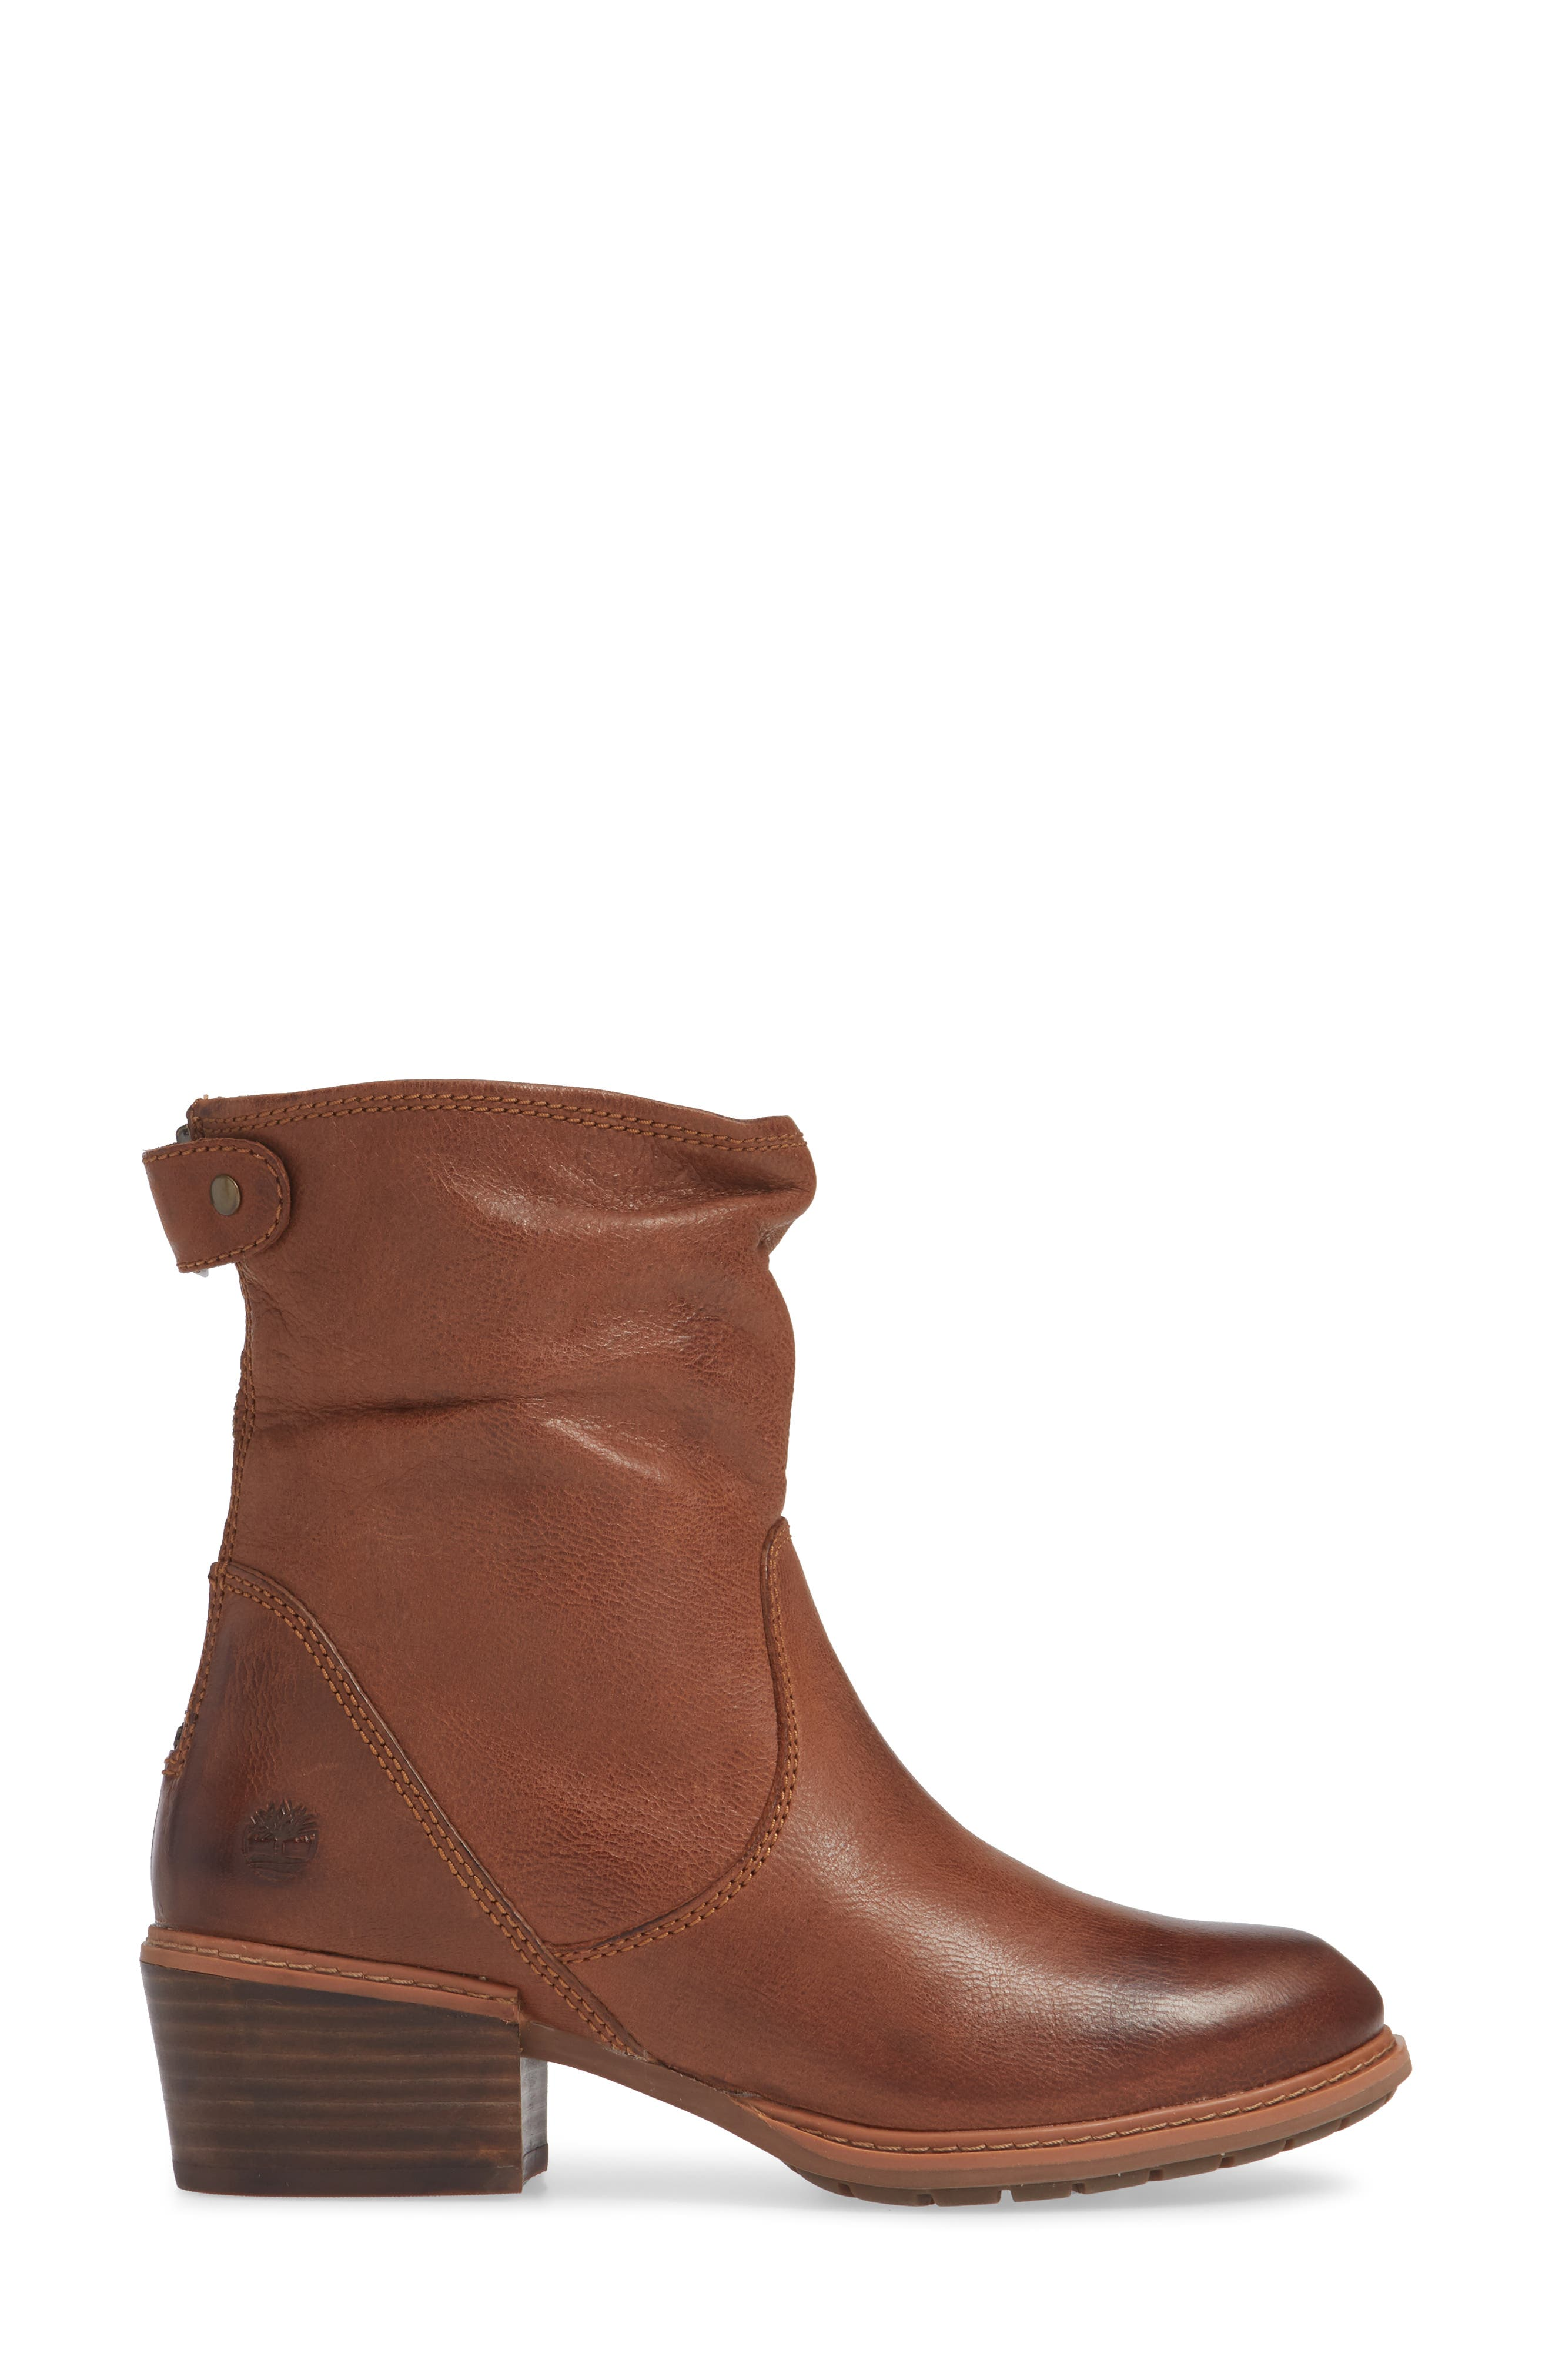 Sutherlin Bay Water Resistant Bootie,                             Alternate thumbnail 3, color,                             ARGAN OIL LEATHER